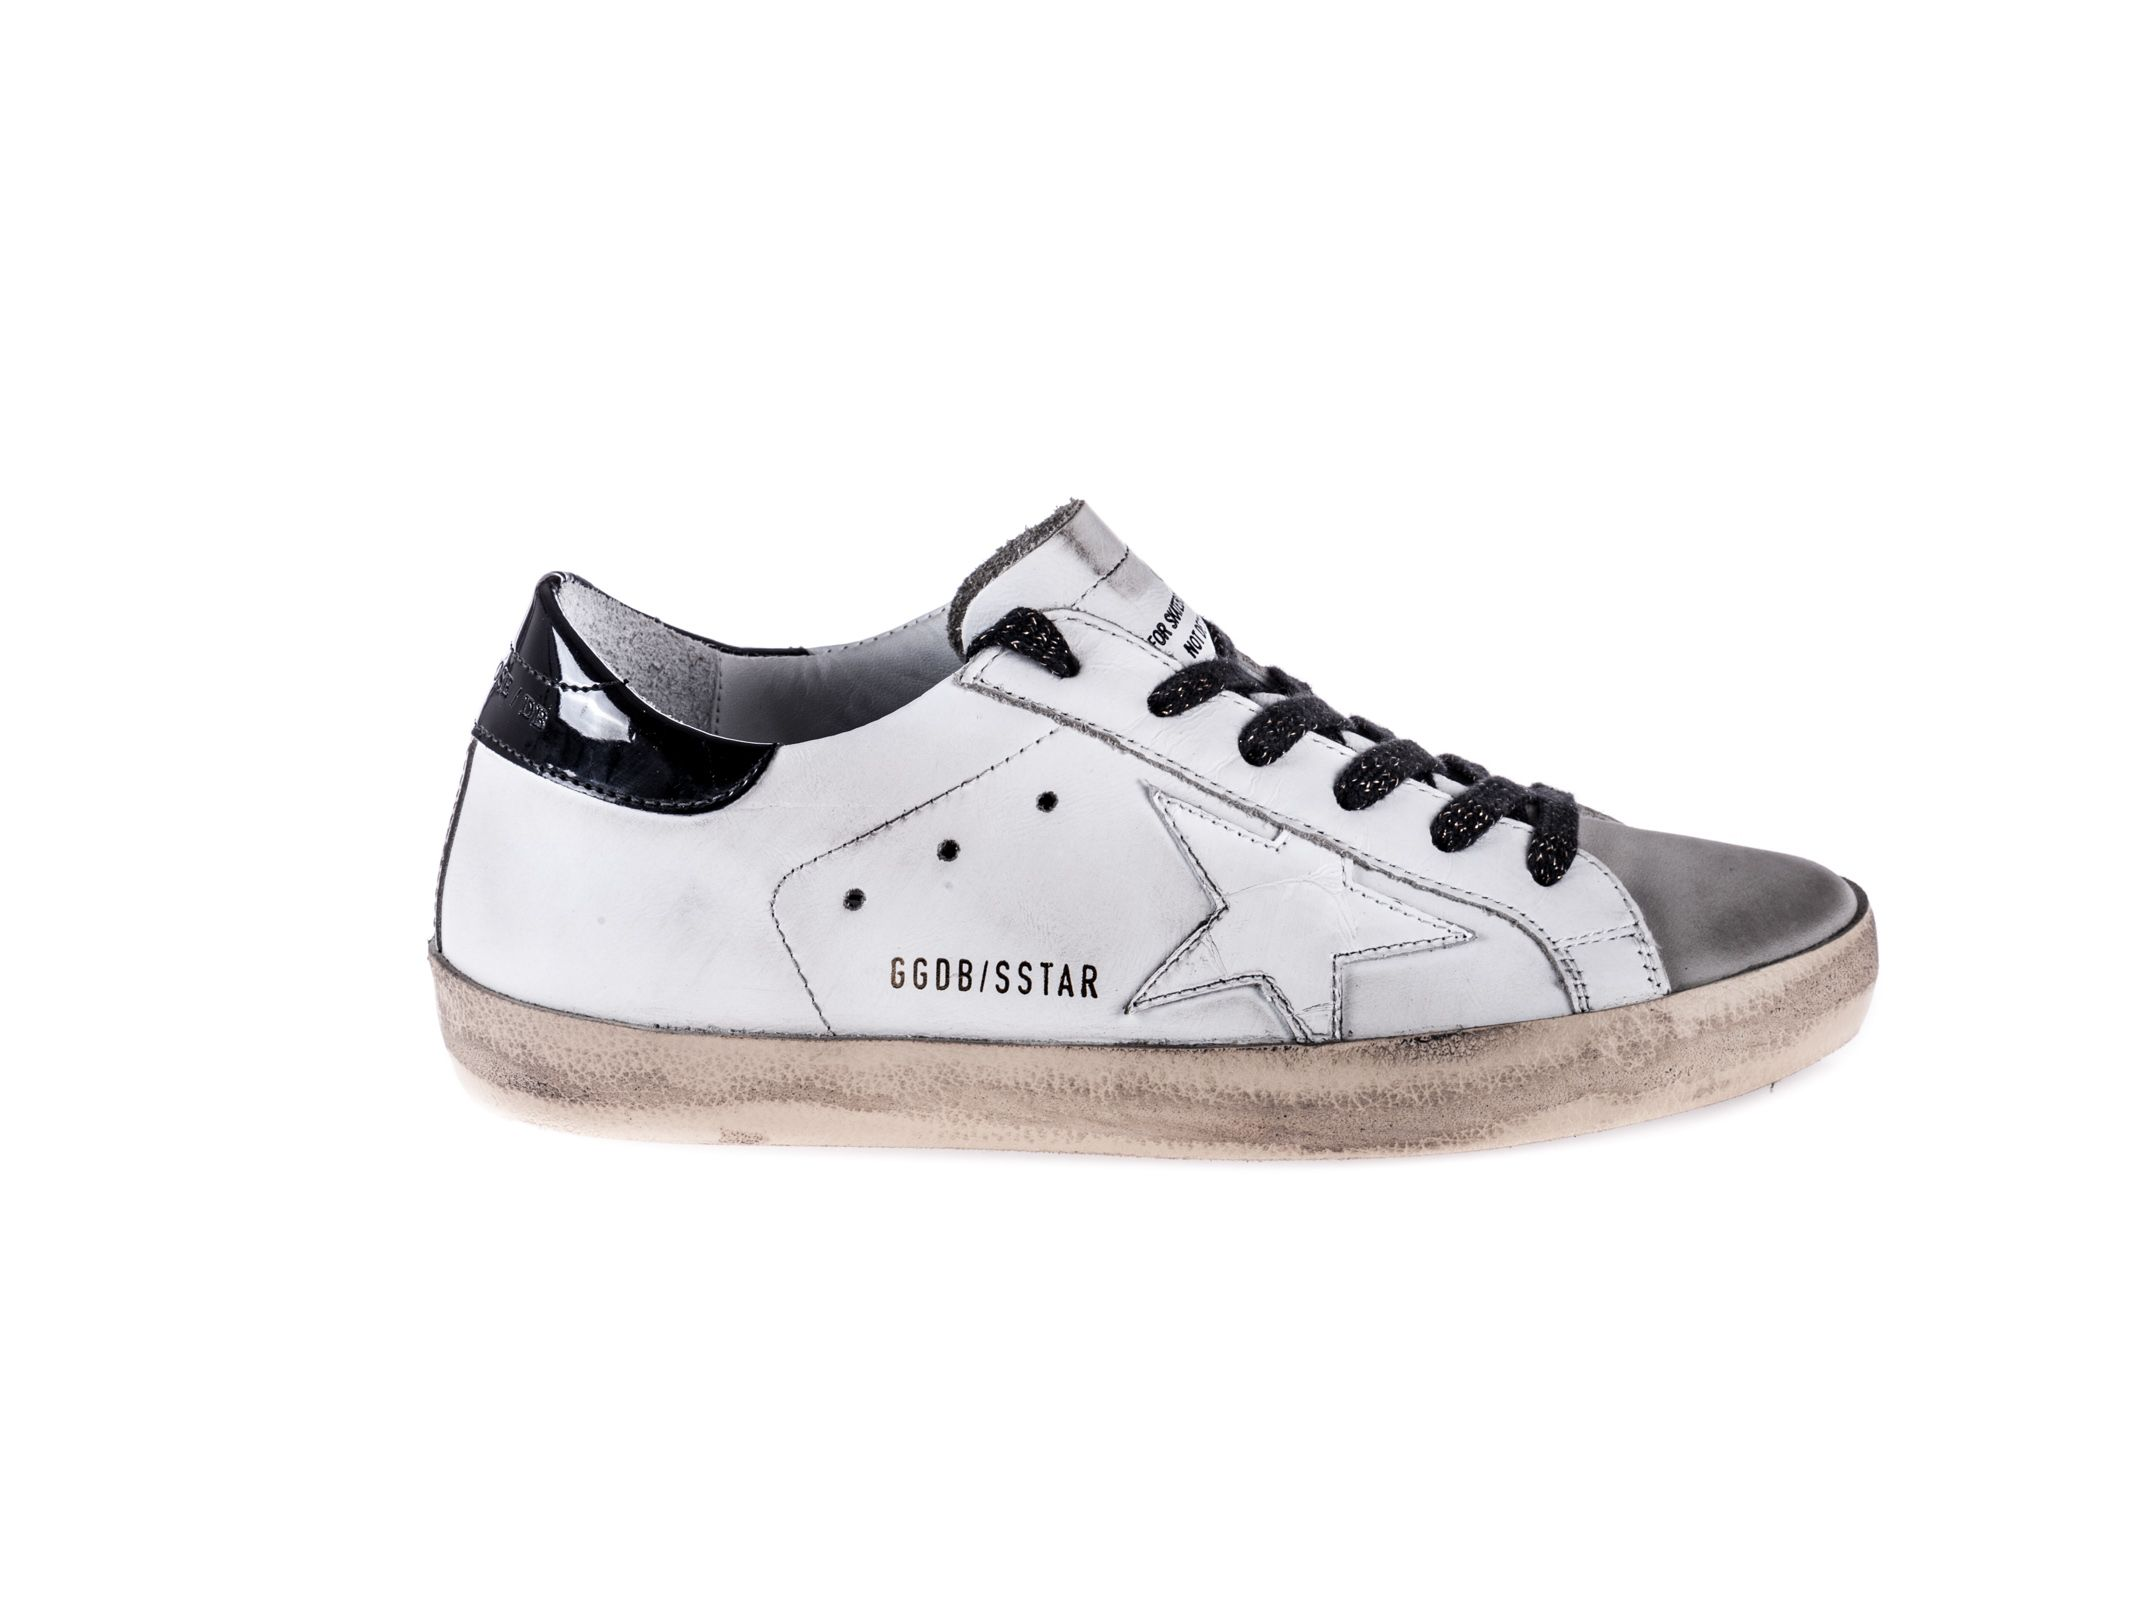 Golden Goose - Golden Goose Superstar Sneakers - White, Women's Sneakers | Italist